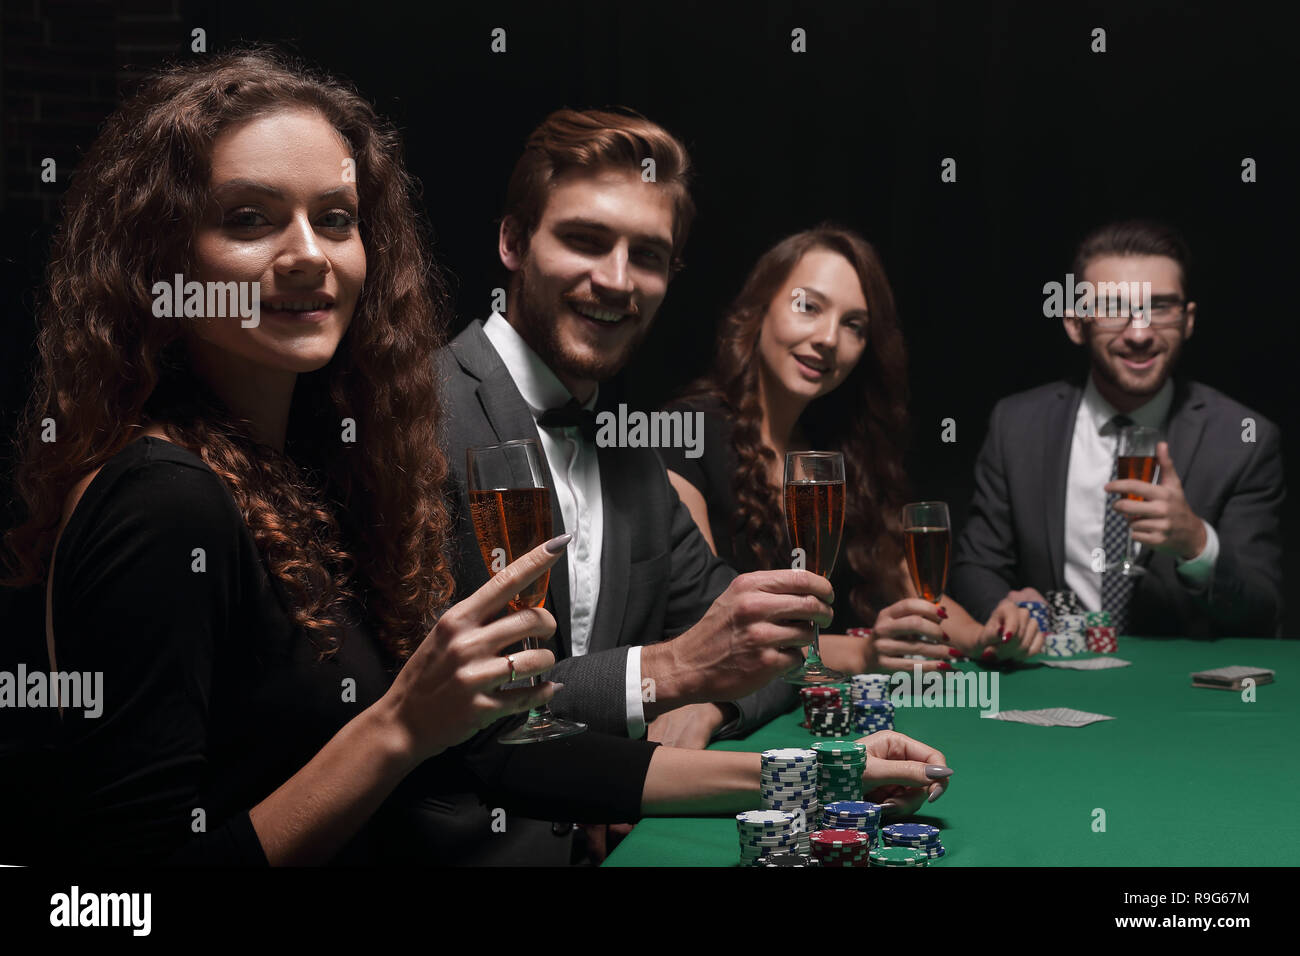 beautiful woman sitting at a table in a casino - Stock Image